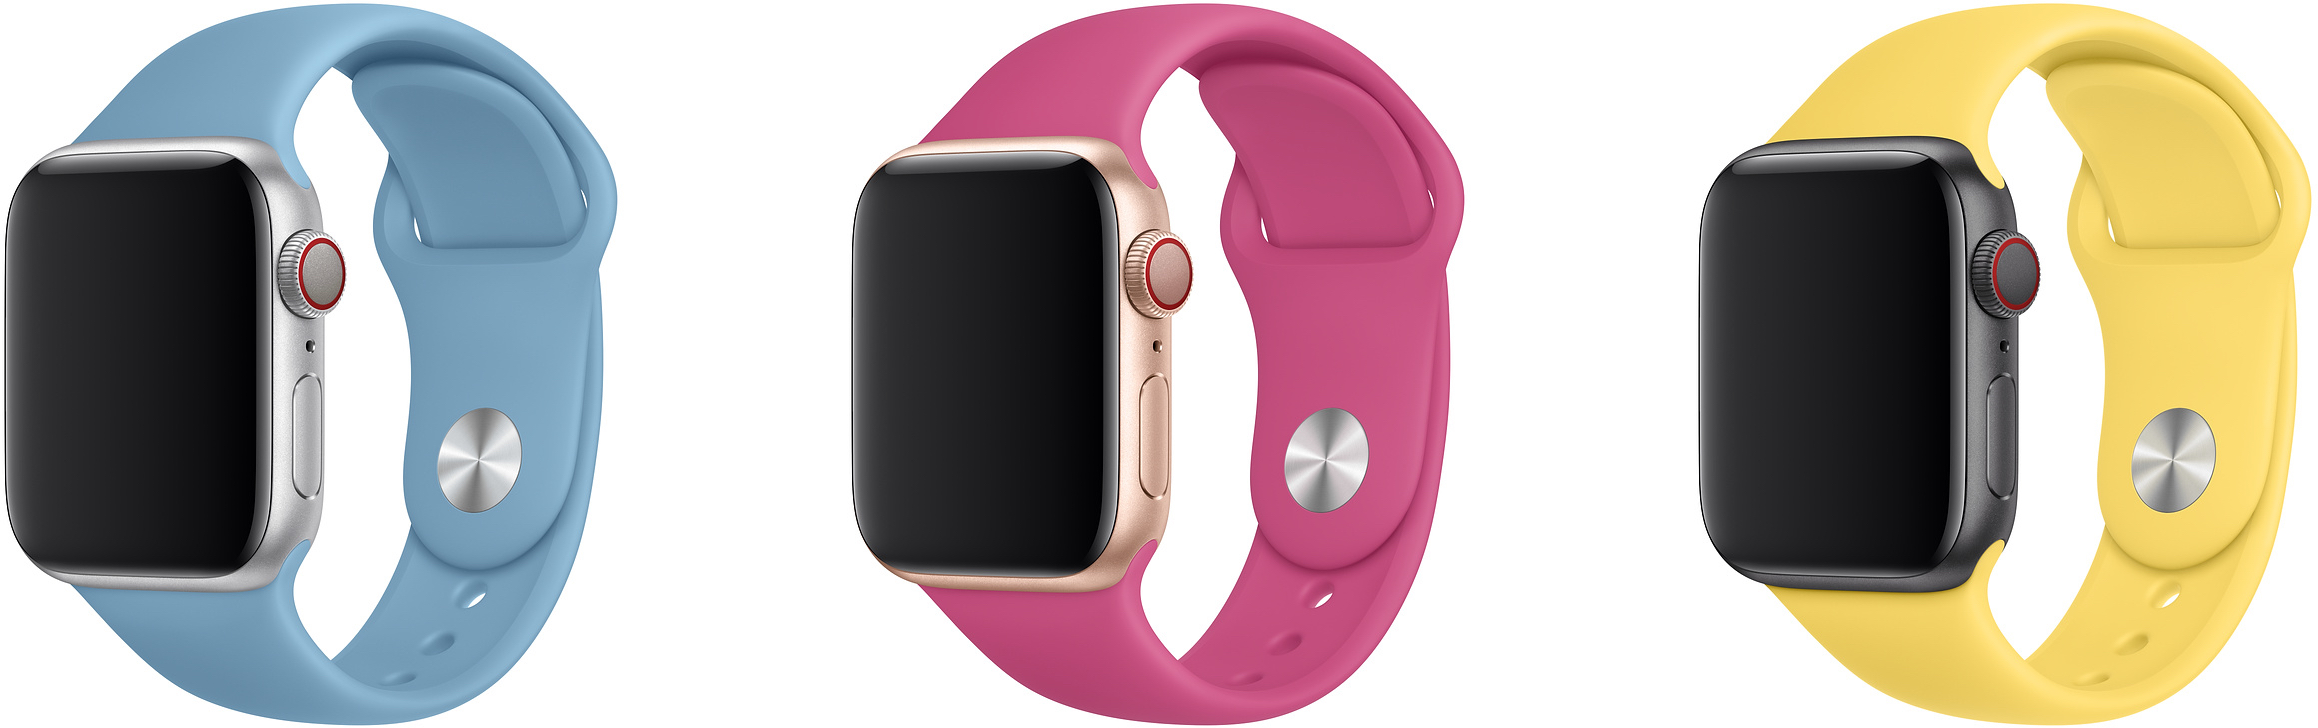 Novas cores da pulseira esportiva do Apple Watch